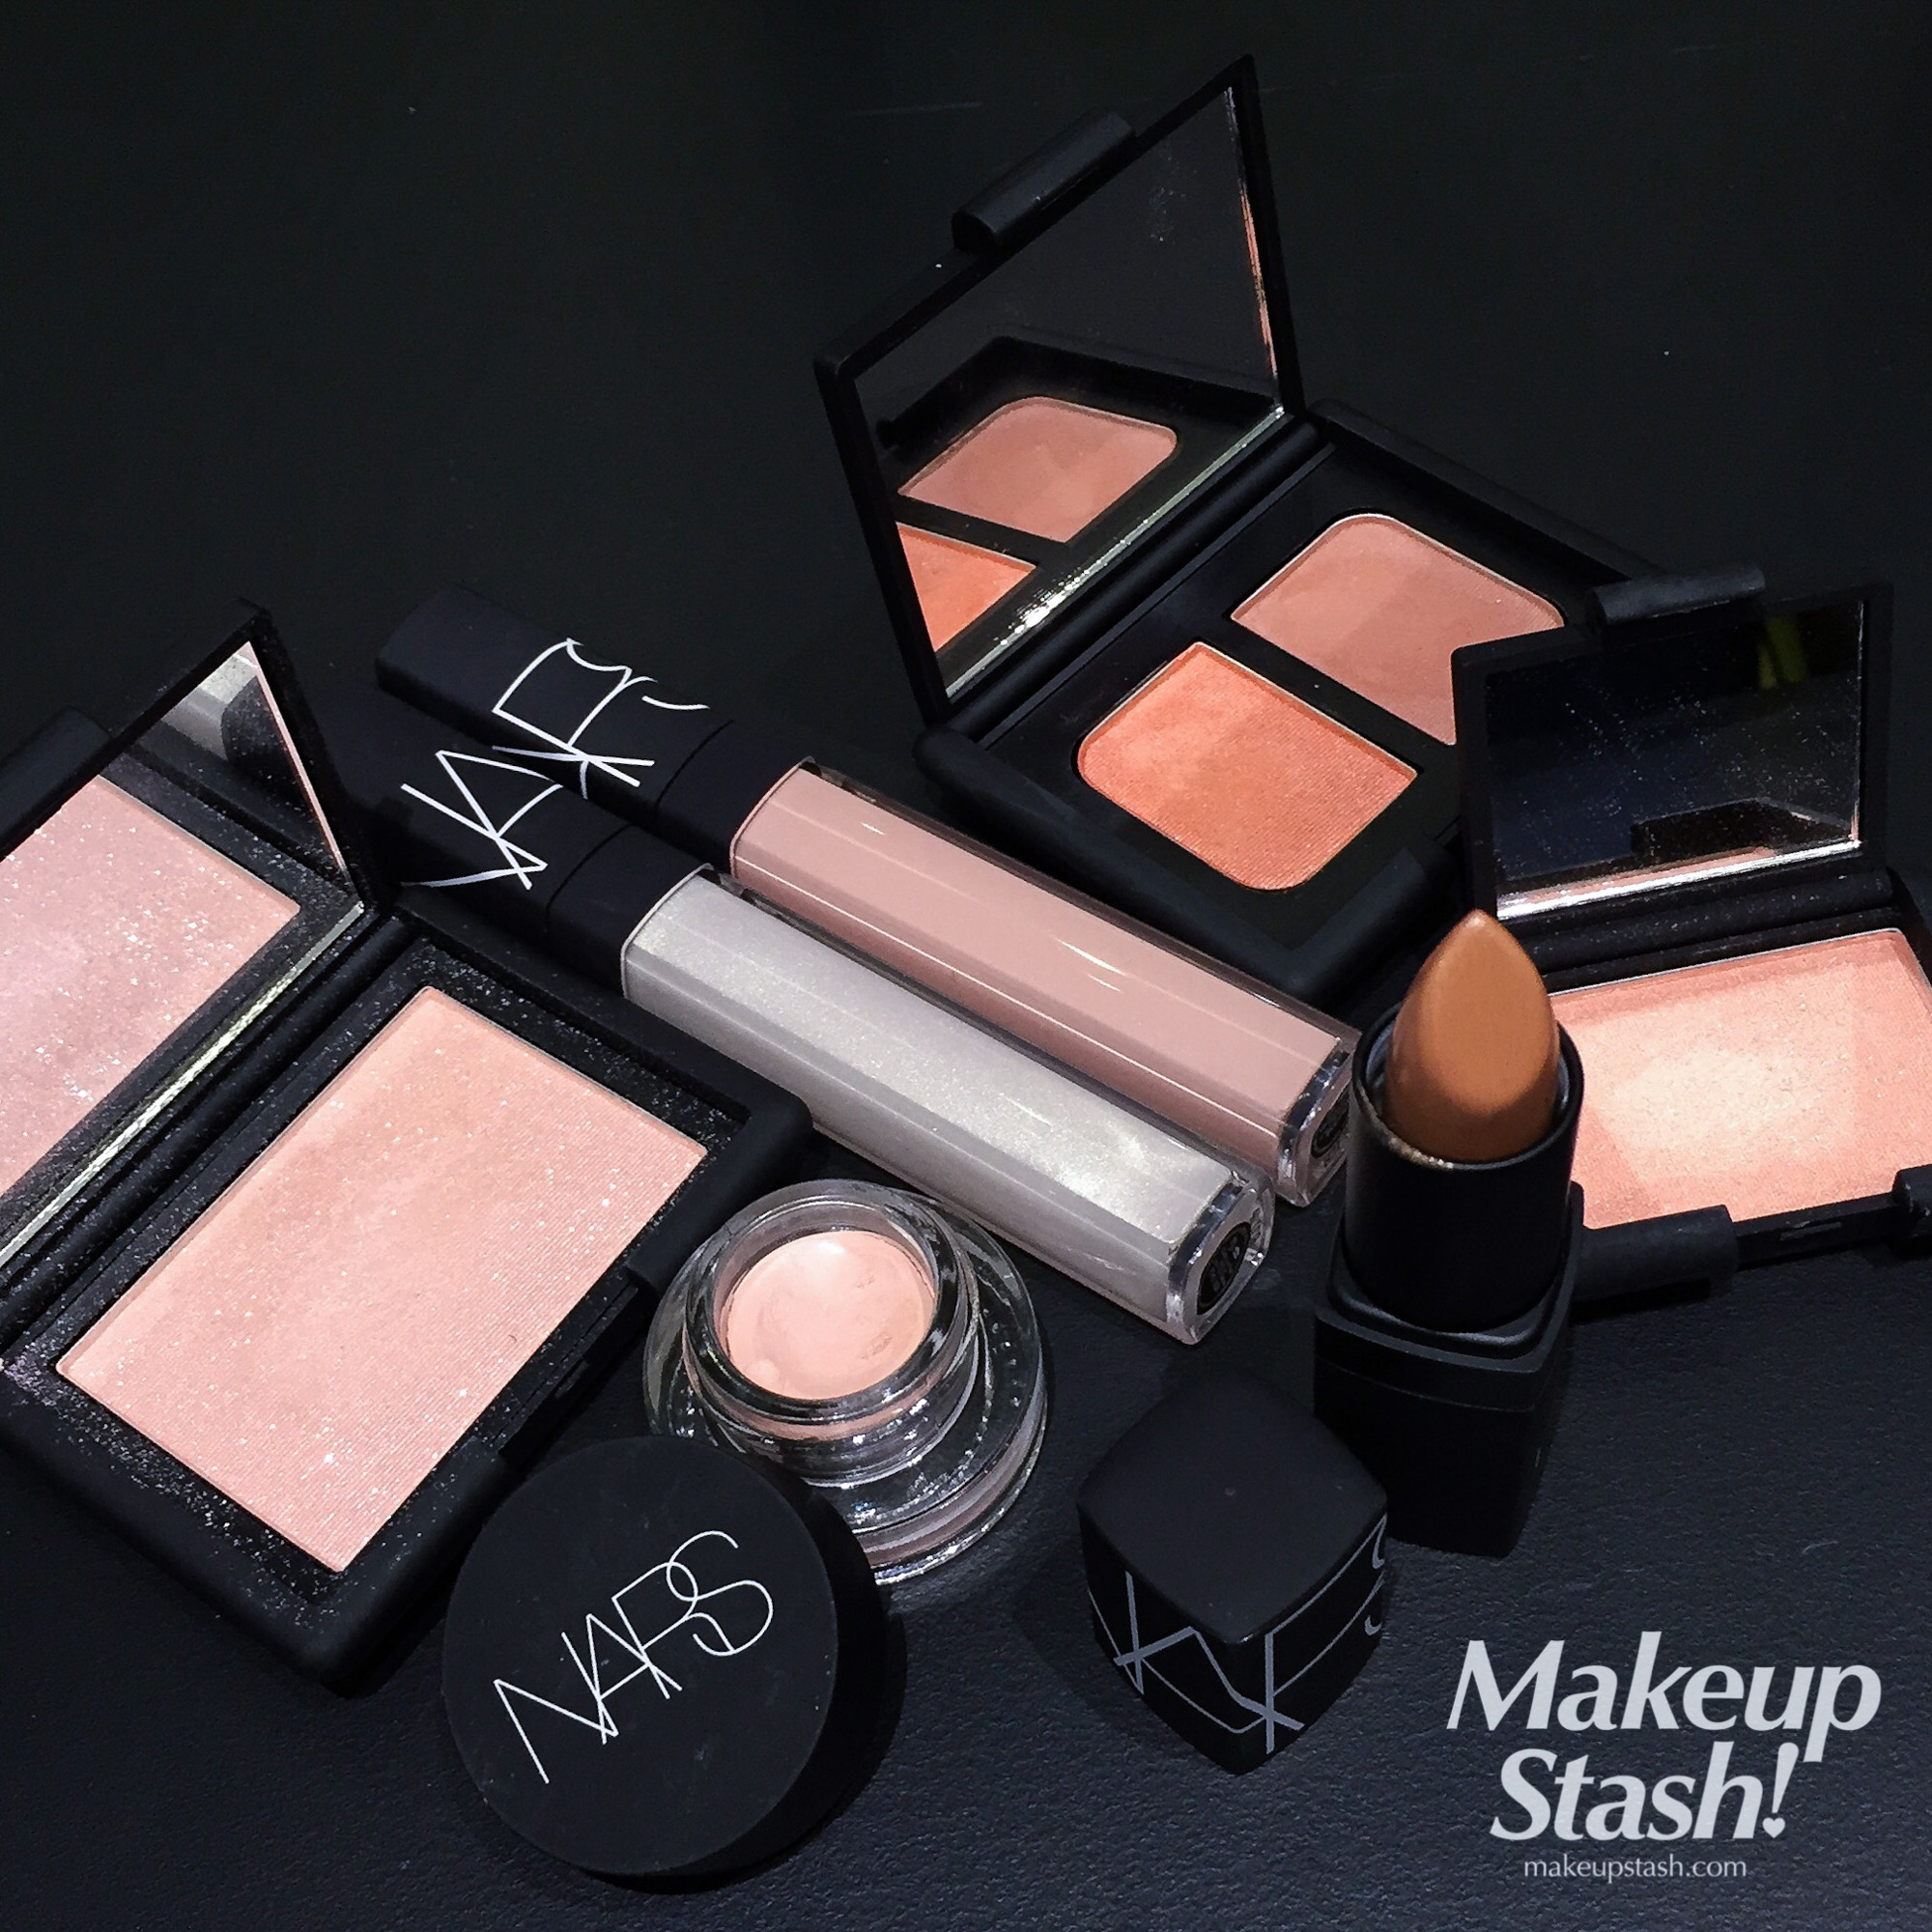 NARS Spring 2015 Color Collection (Photos & Swatches)